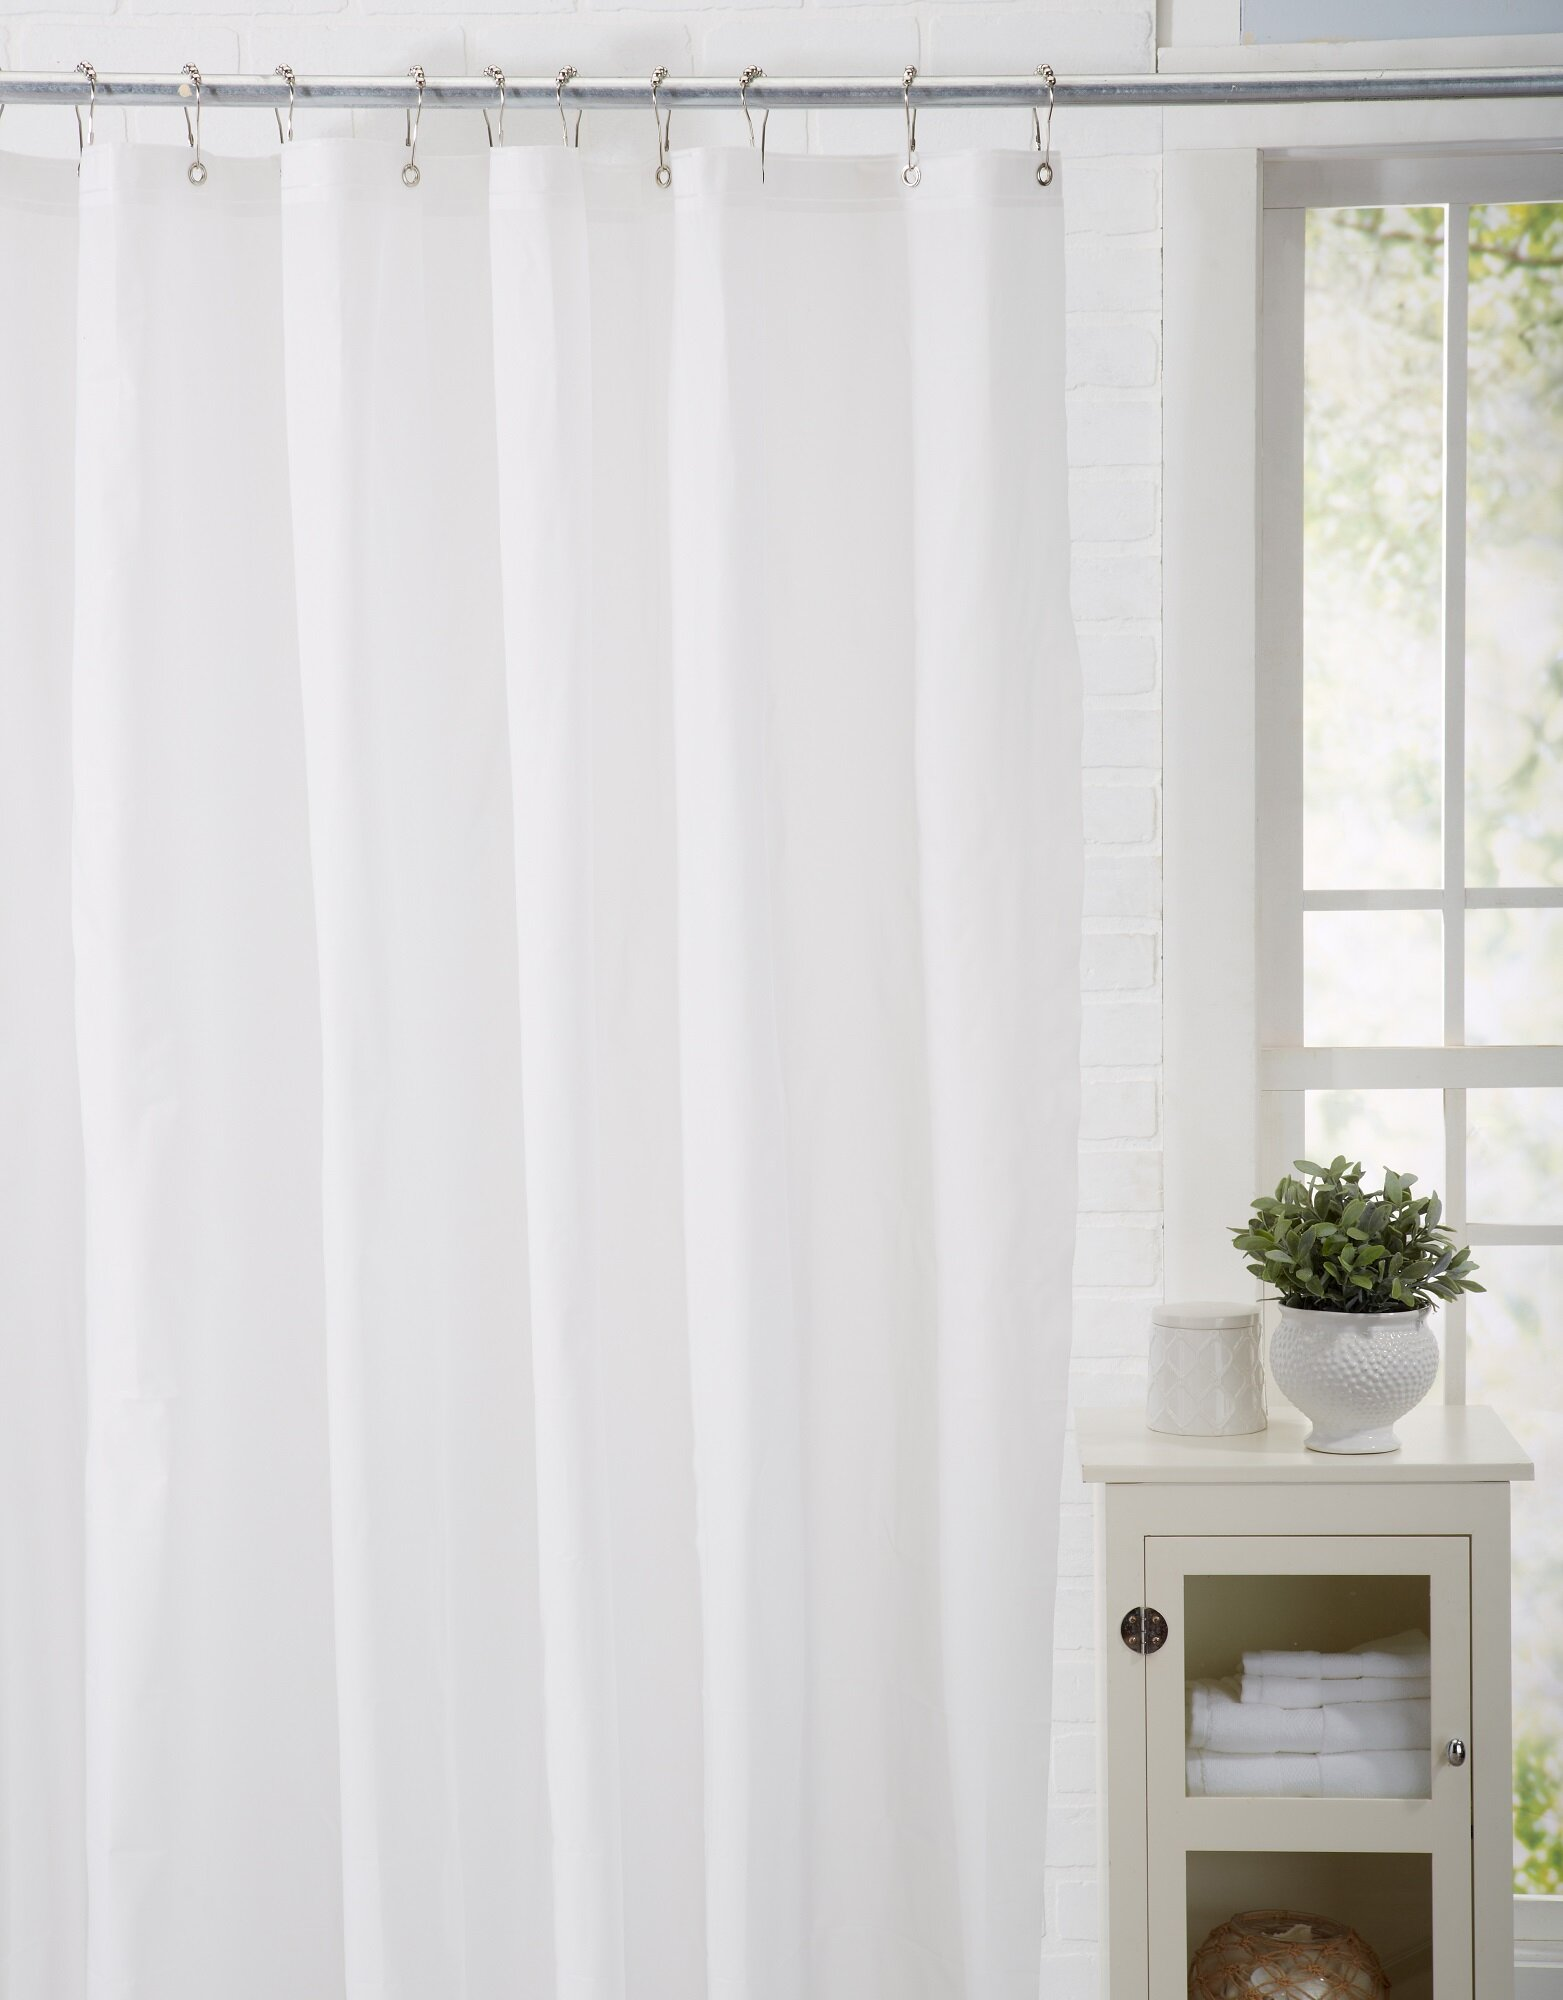 to drapes liner luxury of liners plum sizes inspirational how curtain furniture thinsulate beautiful recyclenebraska put season shower org smart insulating